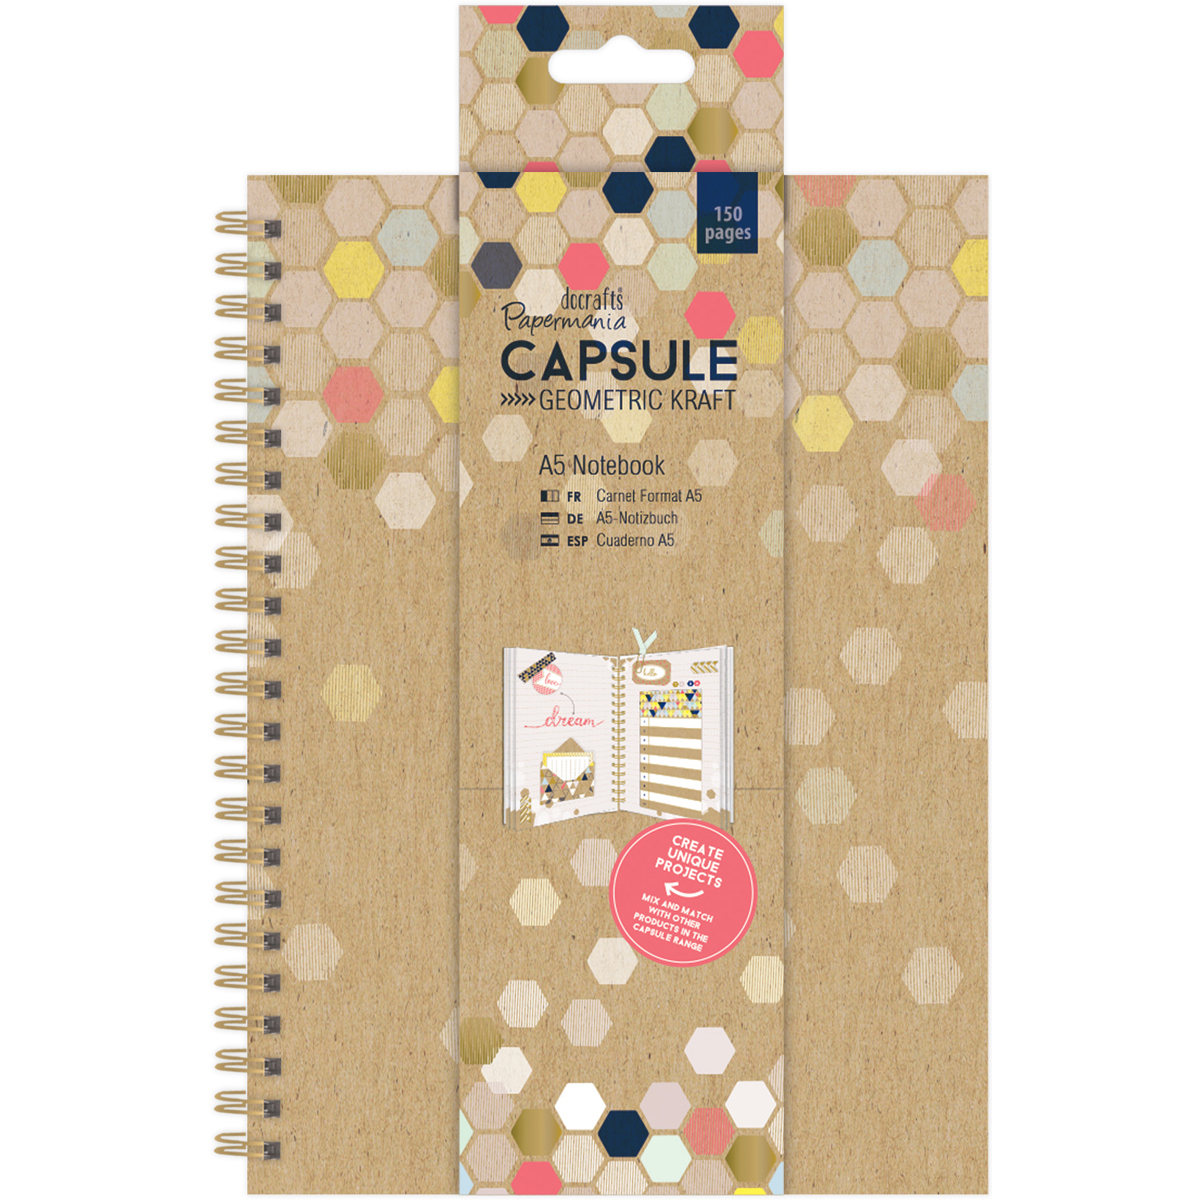 Capsule Geo. Kraft A5 Notebook